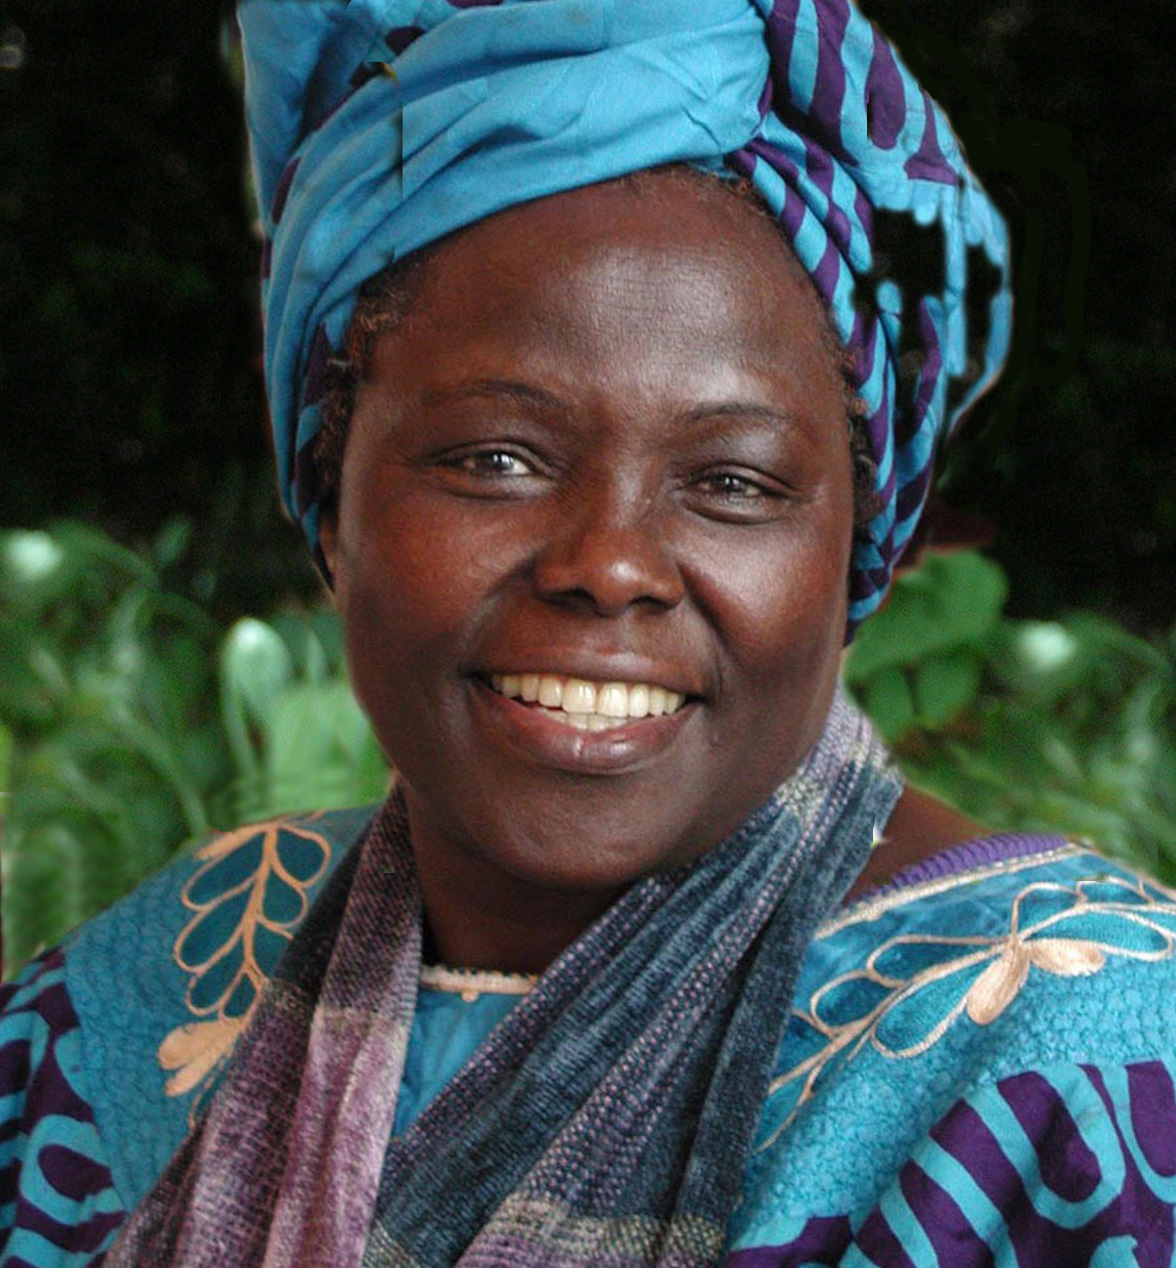 - Dr. Wangari Maathai, Nobel Peace Prize Laureate from Kenya who rallied thousands of women to plant trees. Her vision grew into a nationwide movement to safeguard the environment, protect human rights, and defend democracy.Photo Credit: Martin Rowe